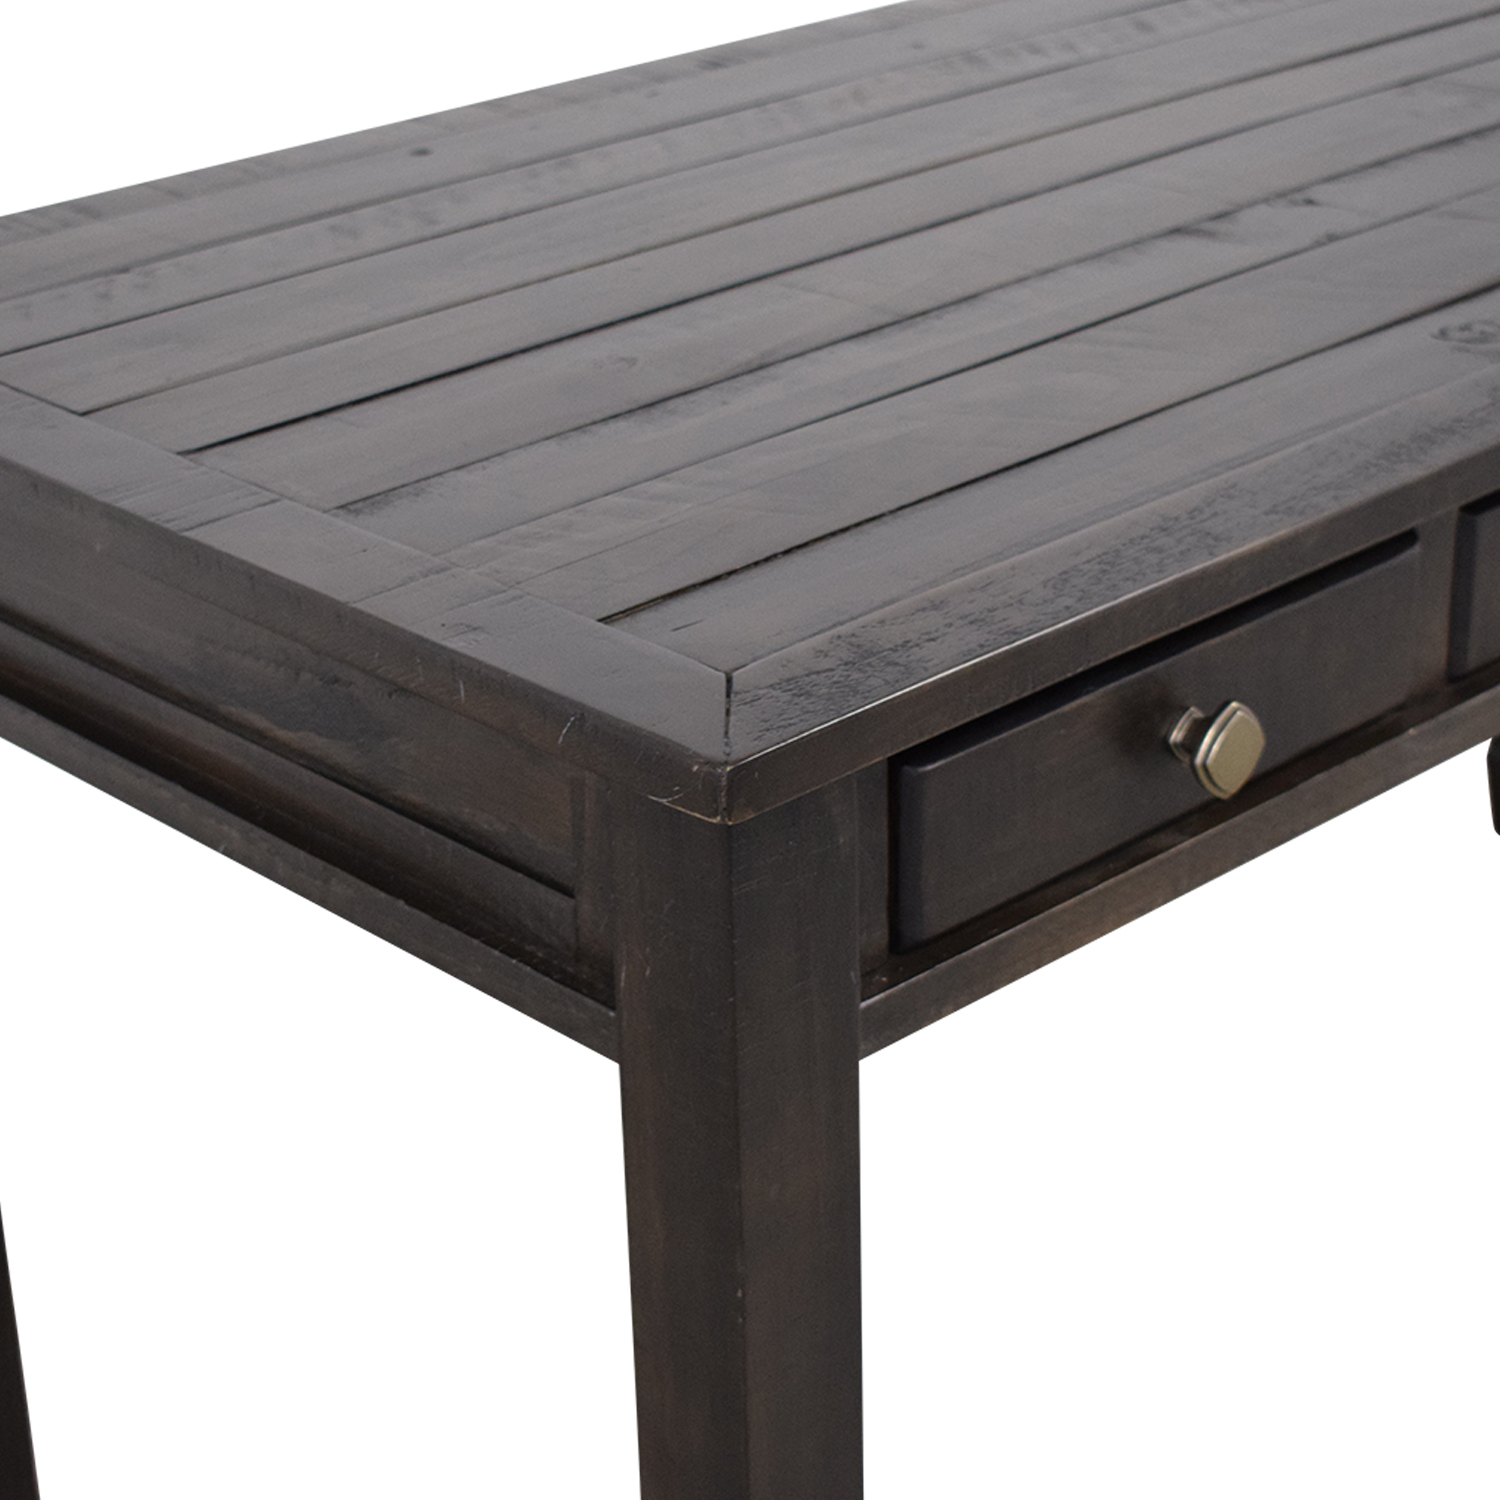 buy Raymour & Flanigan Chair and Desk Raymour & Flanigan Utility Tables